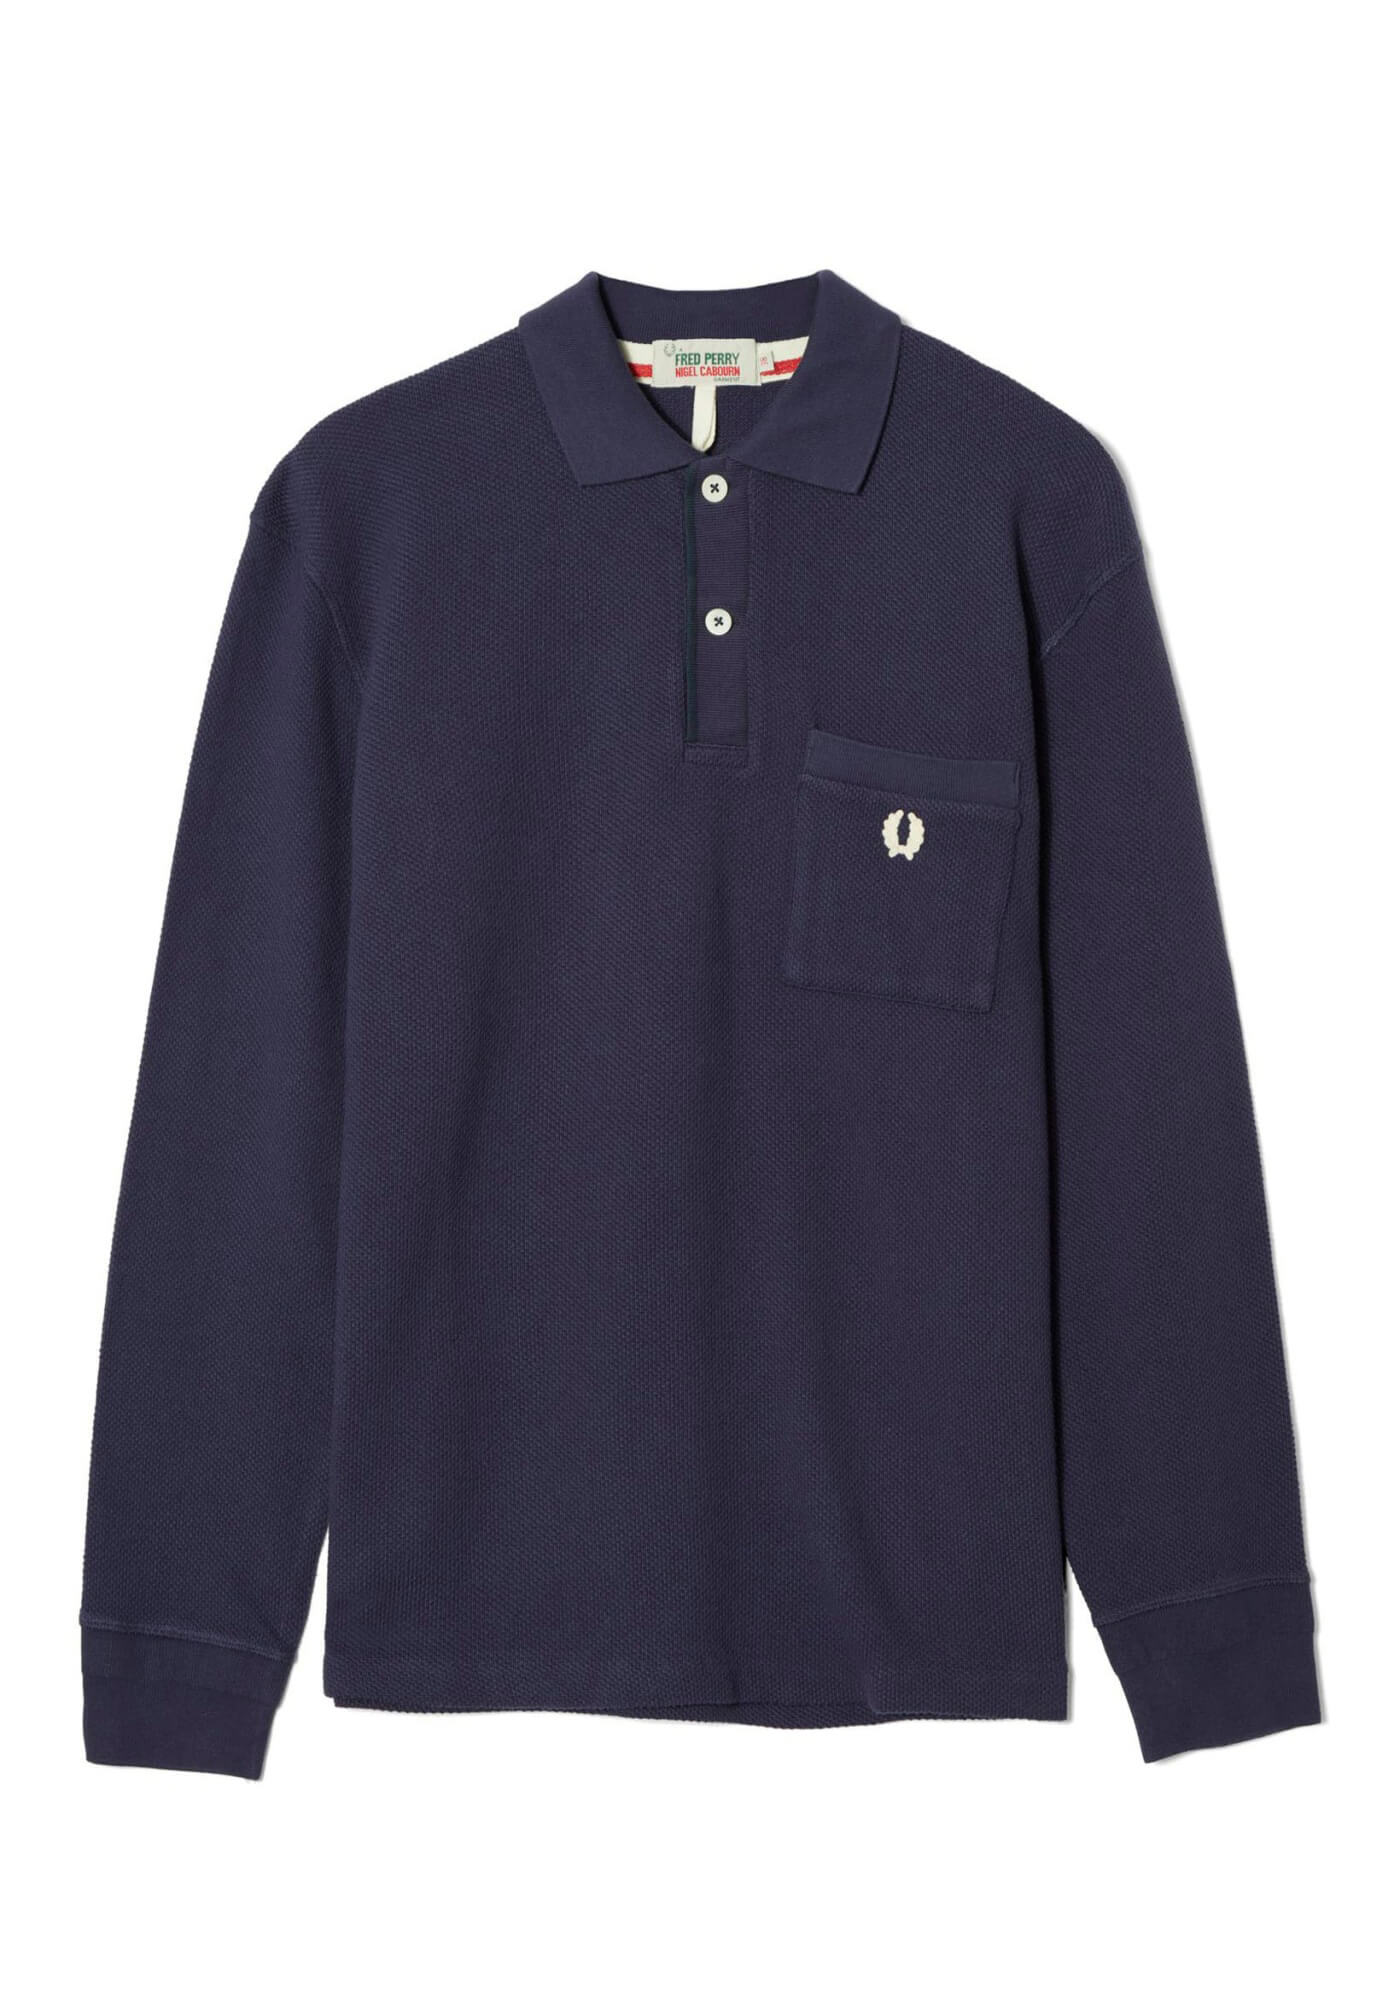 Nigel Cabourn L/S Training Pique Shirt